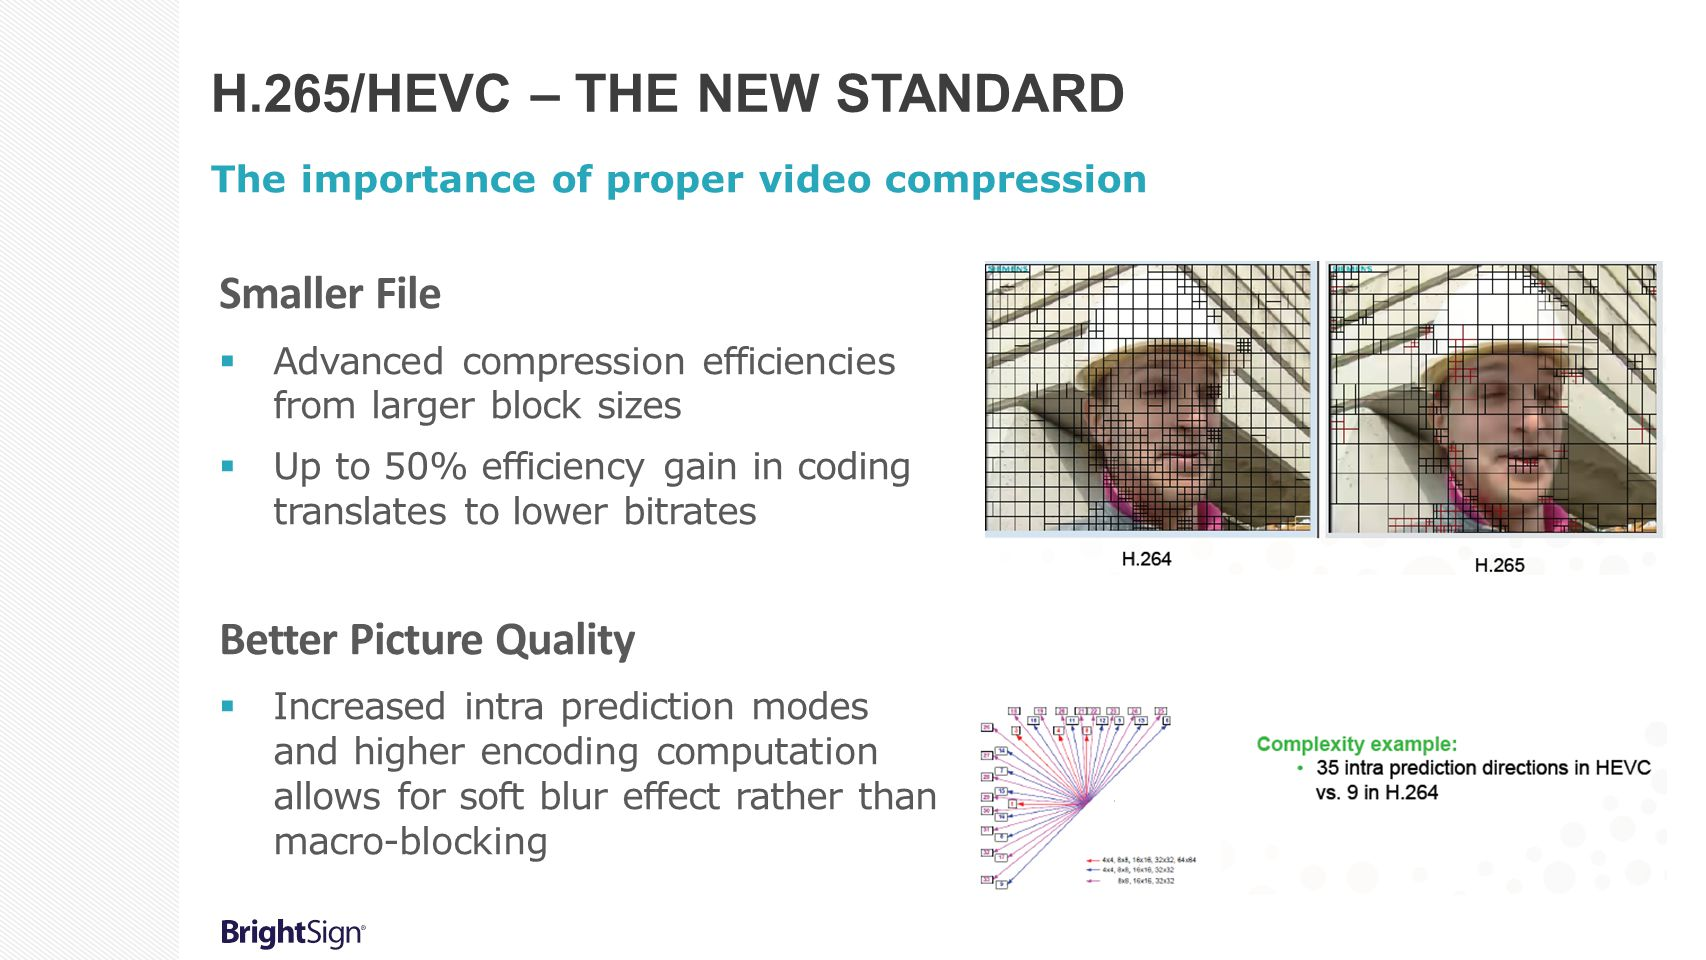 H.265/HEVC – THE NEW STANDARD The importance of proper video compression Smaller File  Advanced compression efficiencies from larger block sizes  Up to 50% efficiency gain in coding translates to lower bitrates Better Picture Quality  Increased intra prediction modes and higher encoding computation allows for soft blur effect rather than macro-blocking